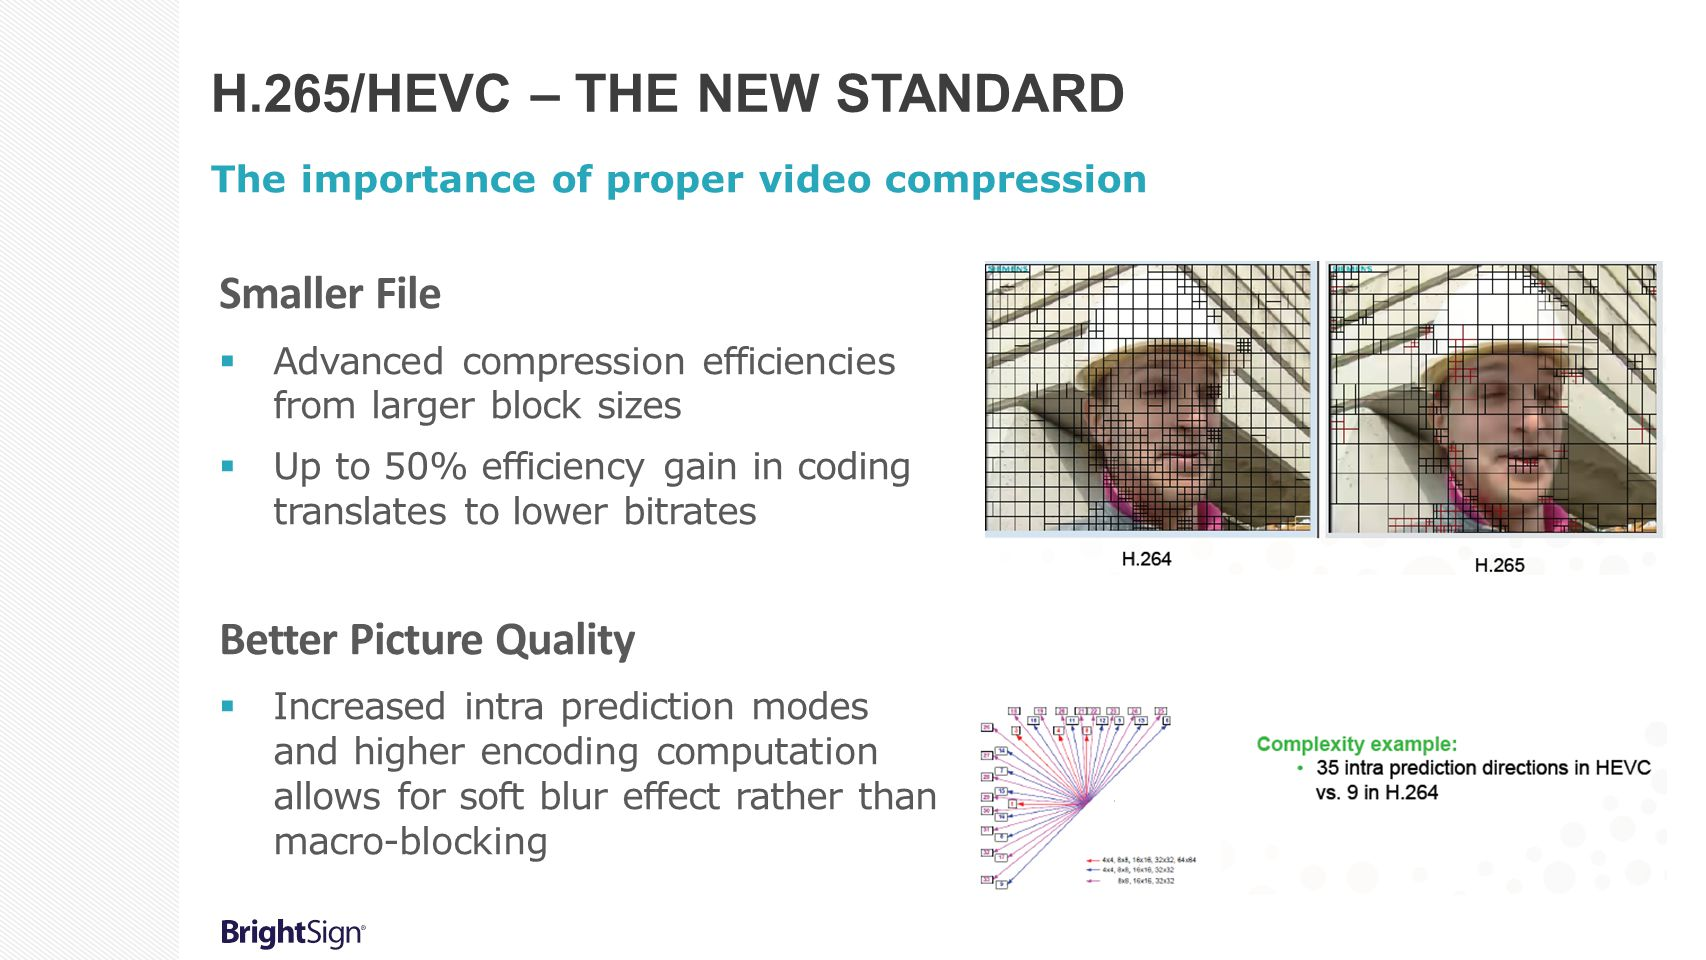 H.265/HEVC – THE NEW STANDARD The importance of proper video compression Smaller File  Advanced compression efficiencies from larger block sizes  Up to 50% efficiency gain in coding translates to lower bitrates Better Picture Quality  Increased intra prediction modes and higher encoding computation allows for soft blur effect rather than macro-blocking